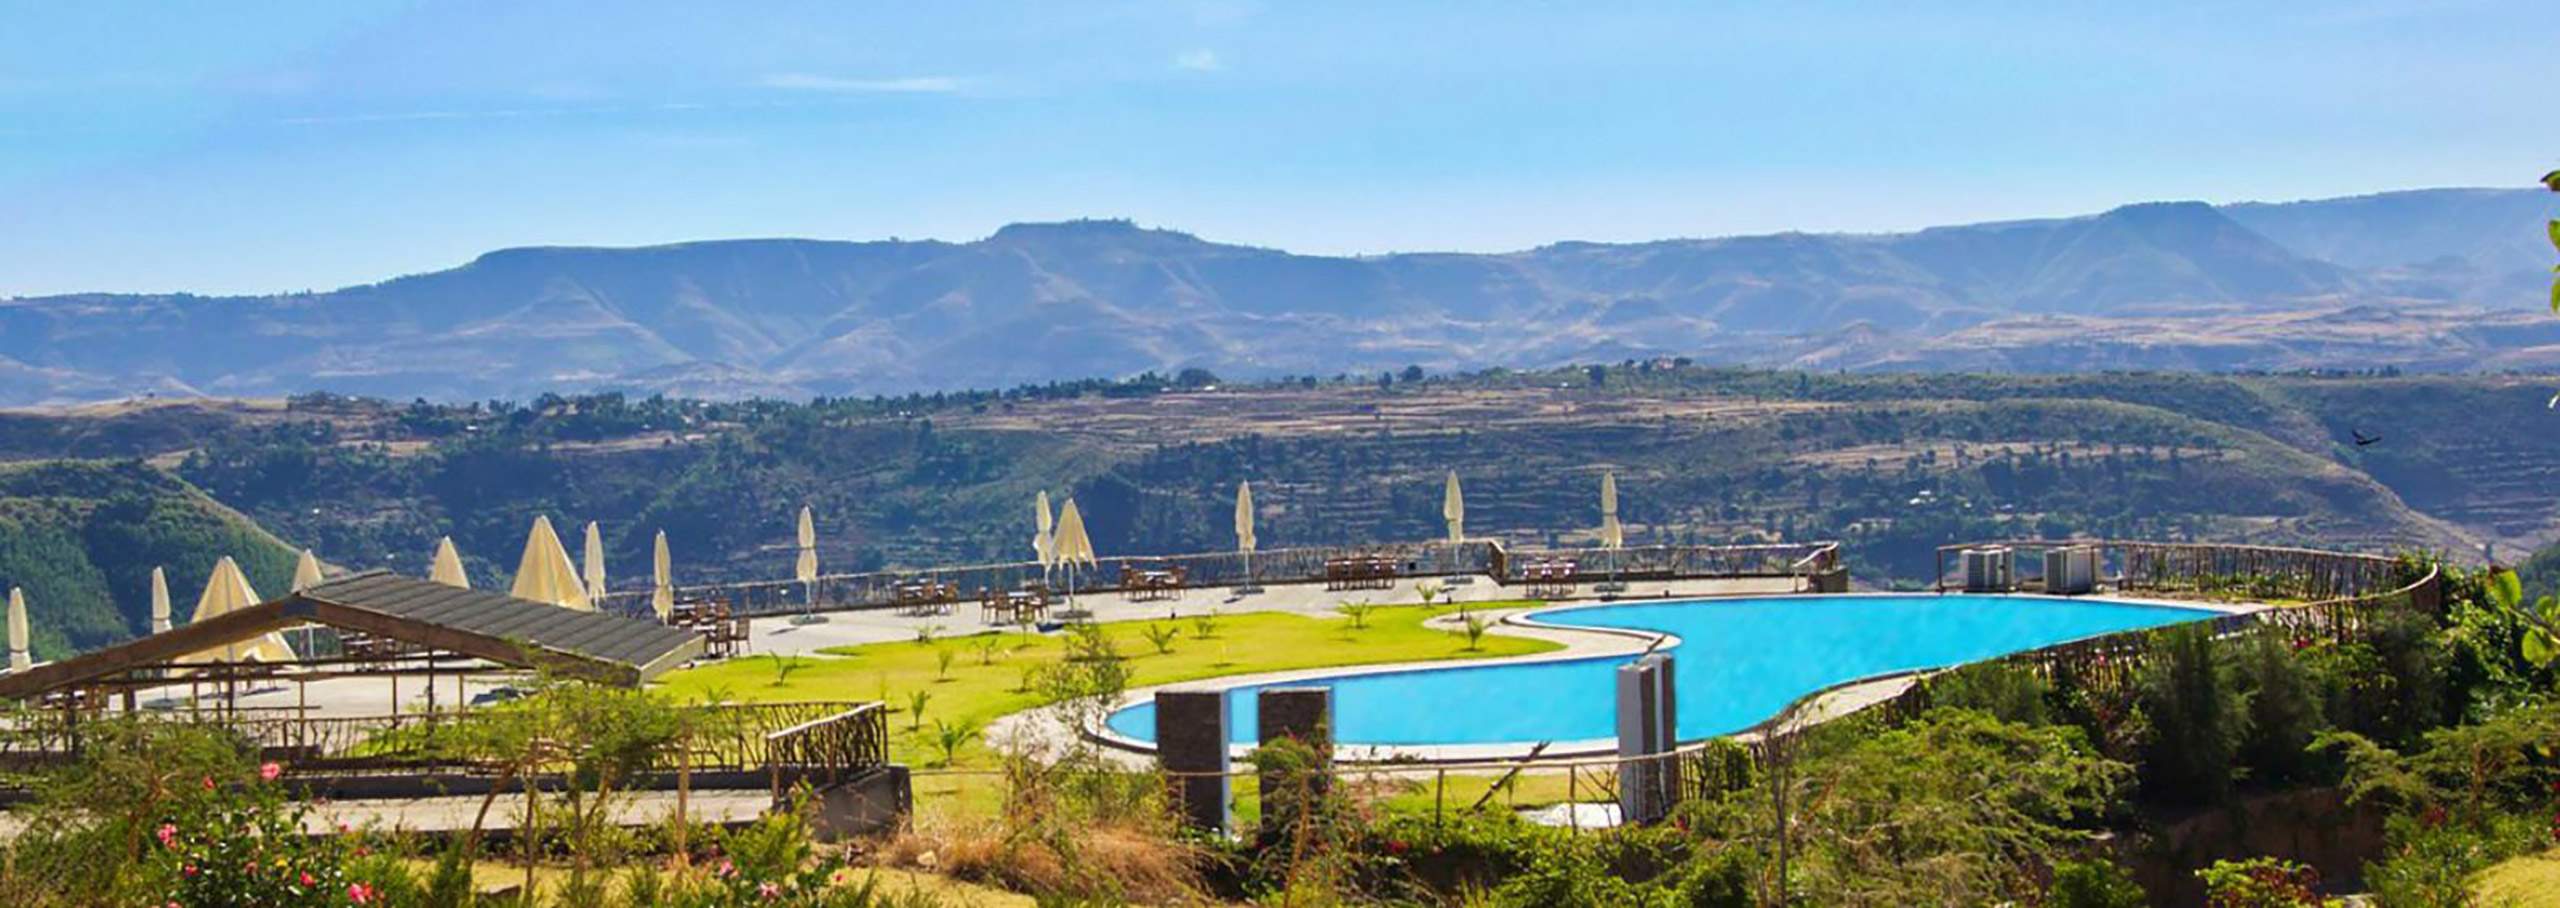 Vast grounds of the Gondar Hills Hotel with a sizeable blue pool, surrounded by the beautiful hills of Gondar, Ethiopia.